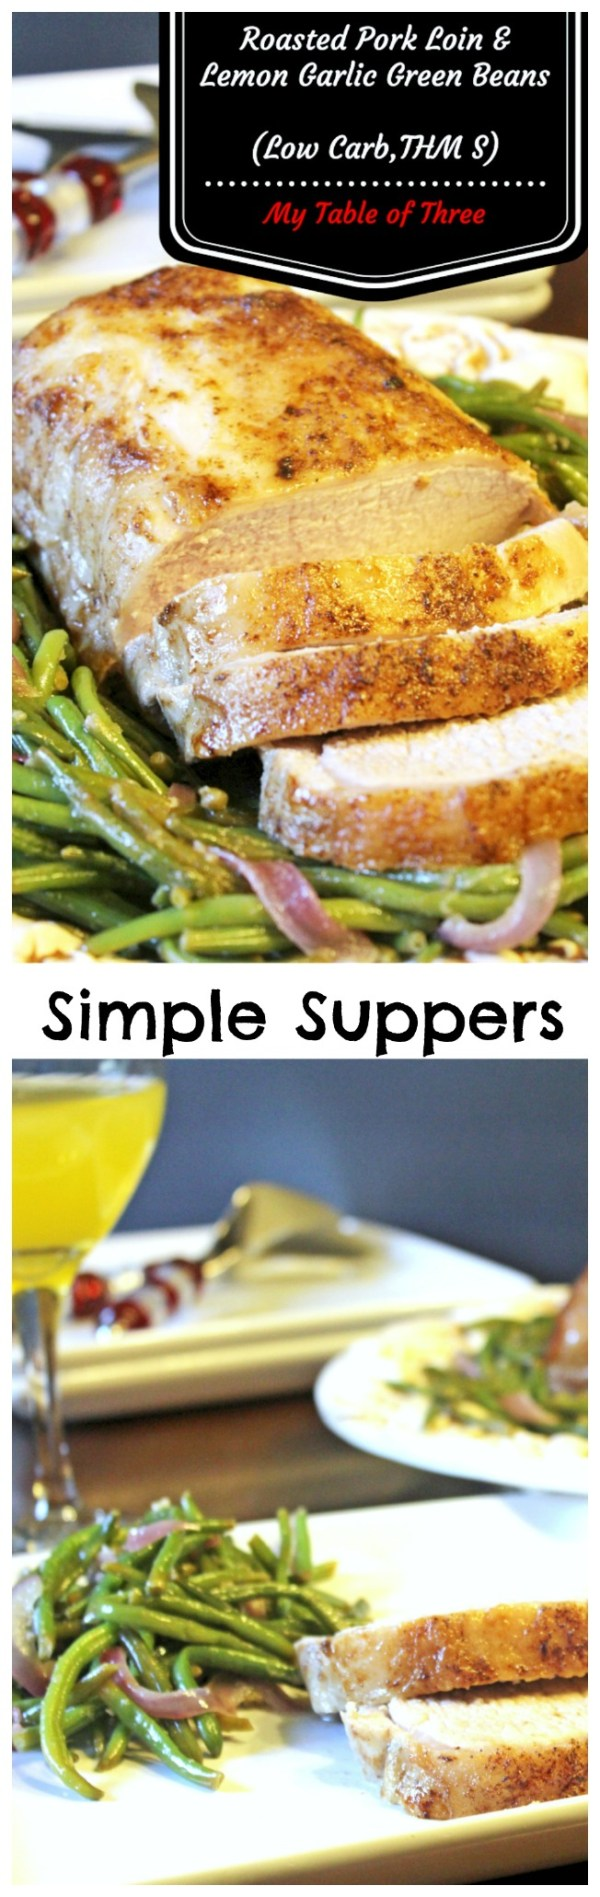 A Simple Supper idea for Roasted Pork and Lemon Garlic Green Beans. Low Carb and Gluten Fre